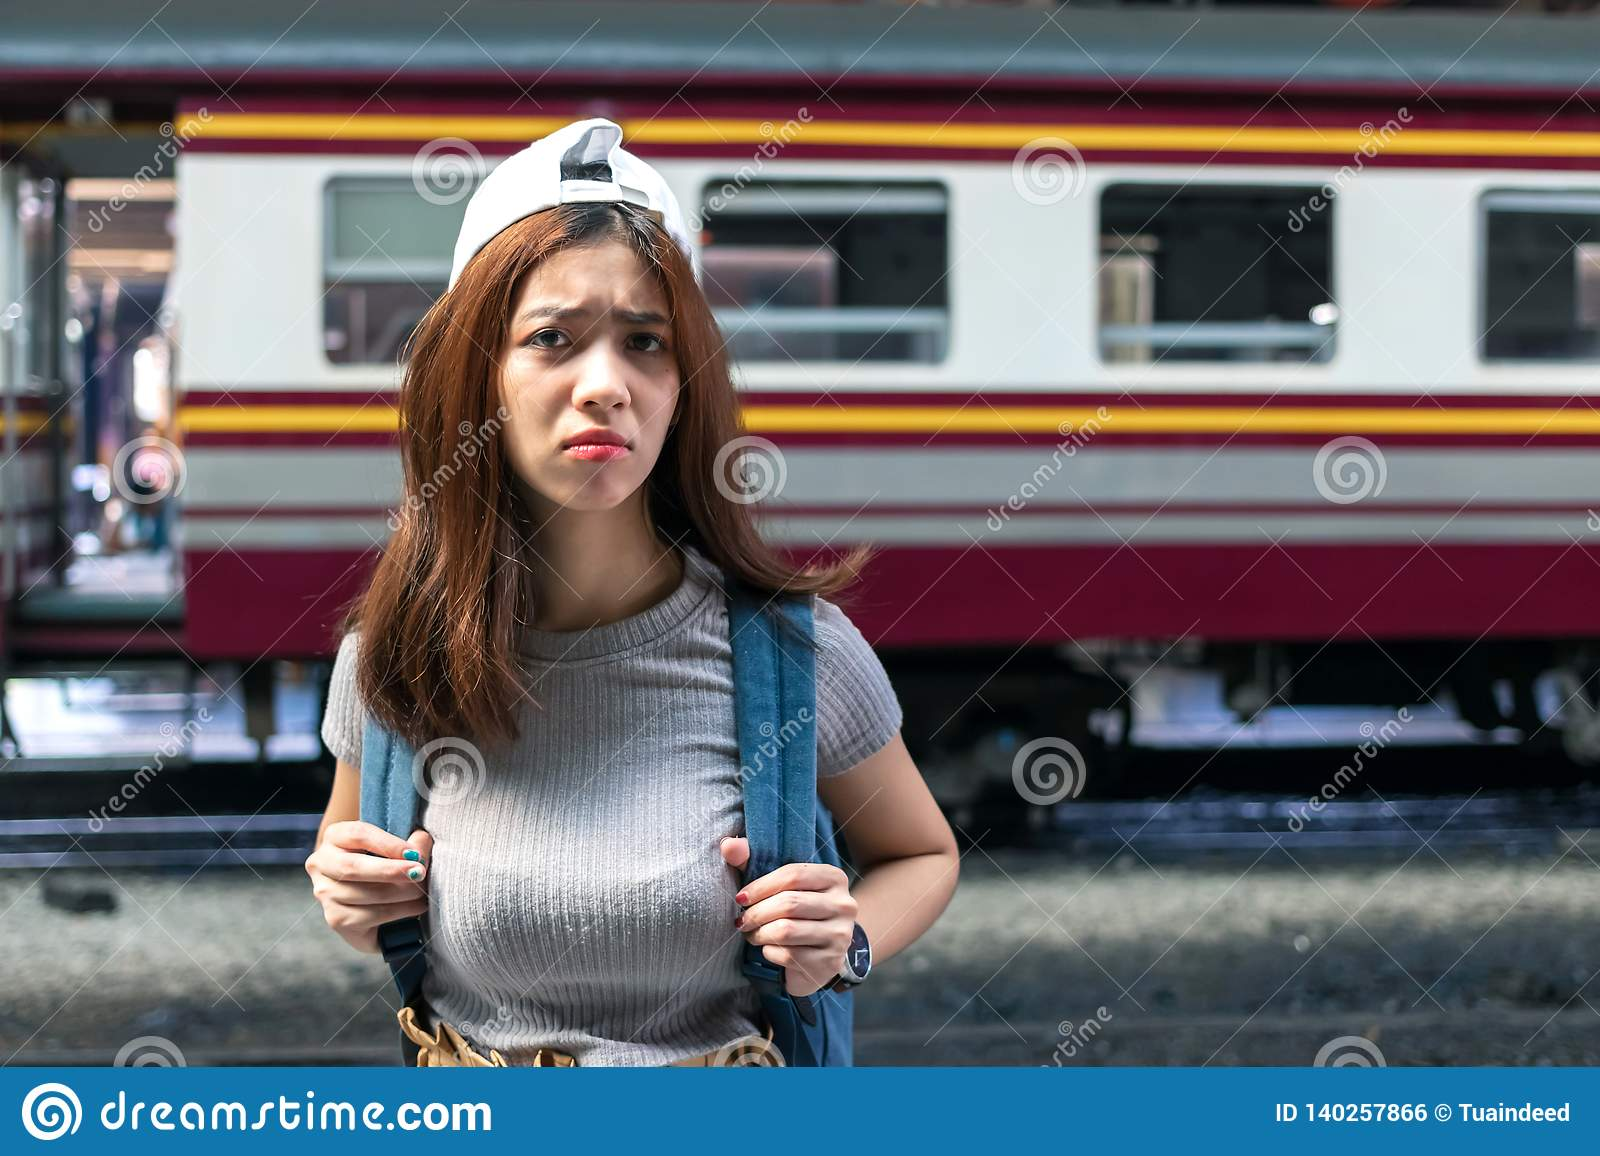 Stressed depressed young Asian lady tourist feeling shock and frustrated after miss a train. Problem and travel lifestyle concept